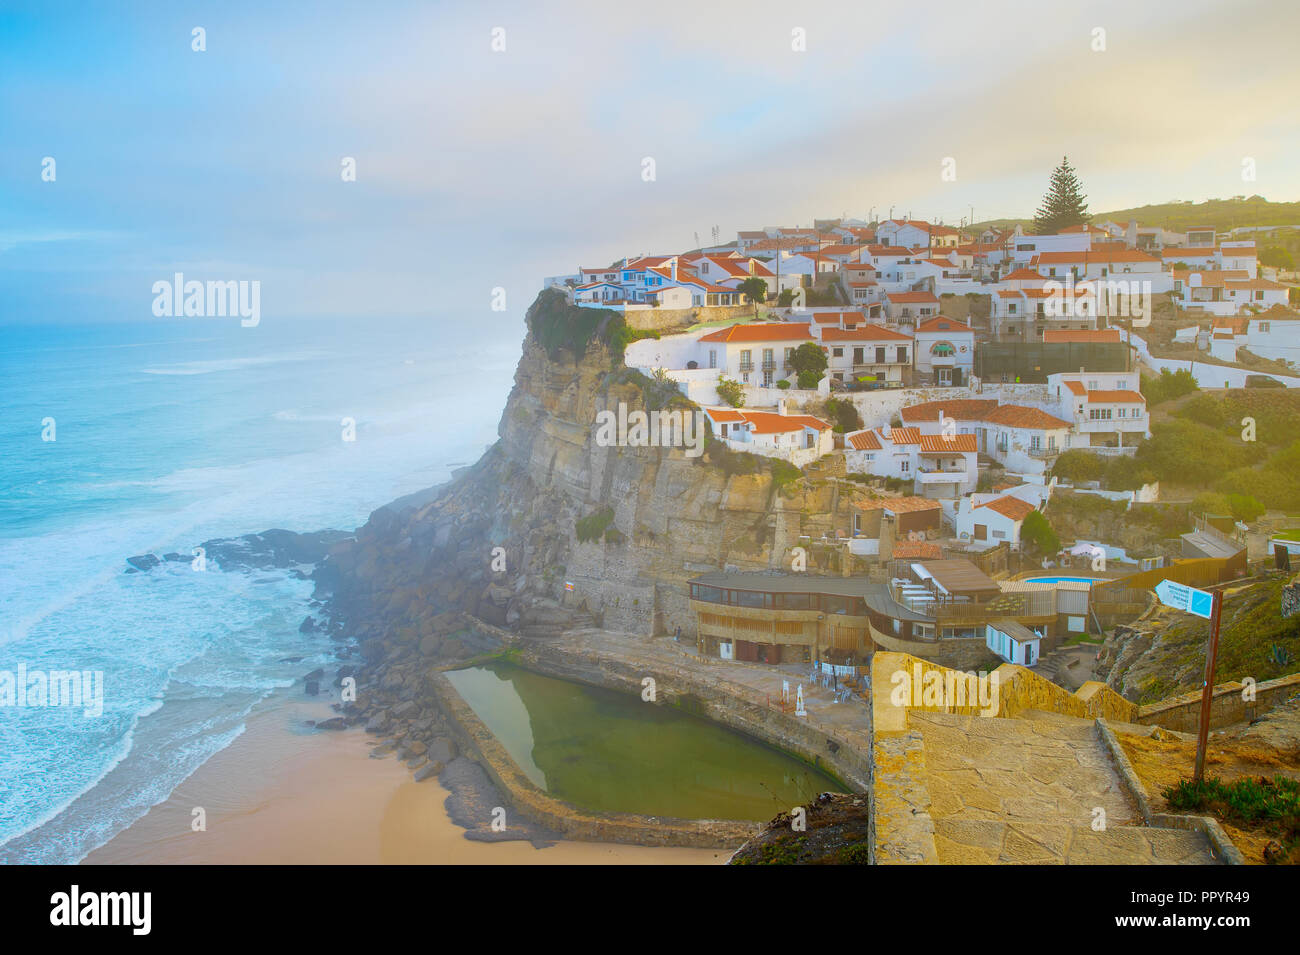 VIew of Azenha do Mar at sunsrise. Portugal - Stock Image